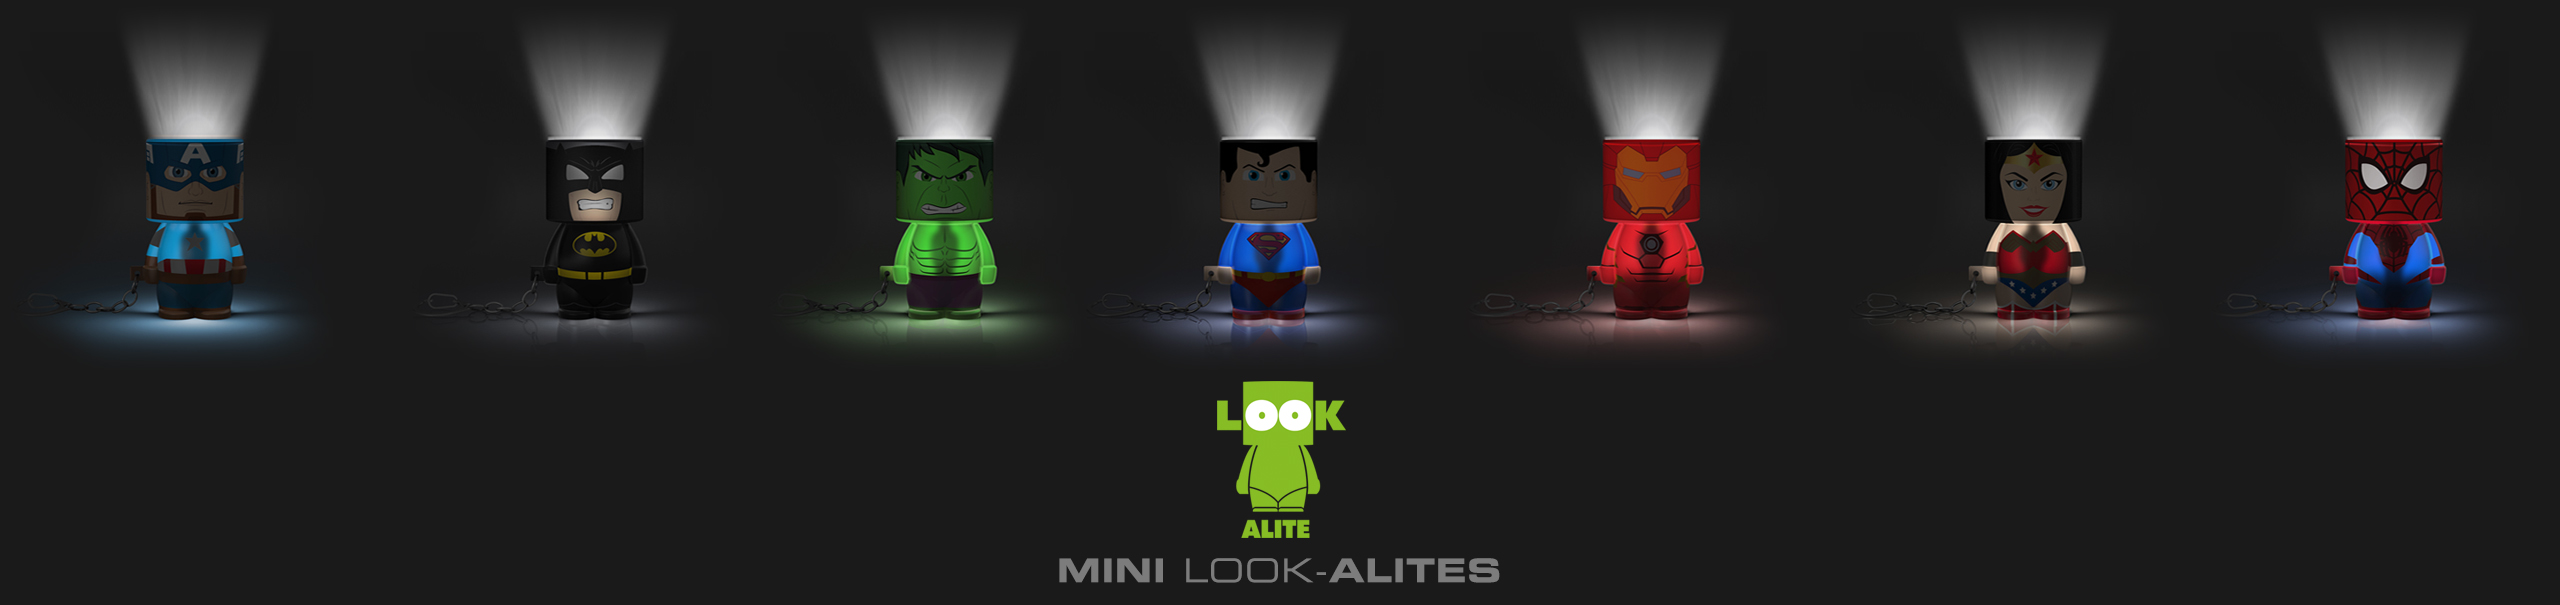 Mini Look Alites Banner